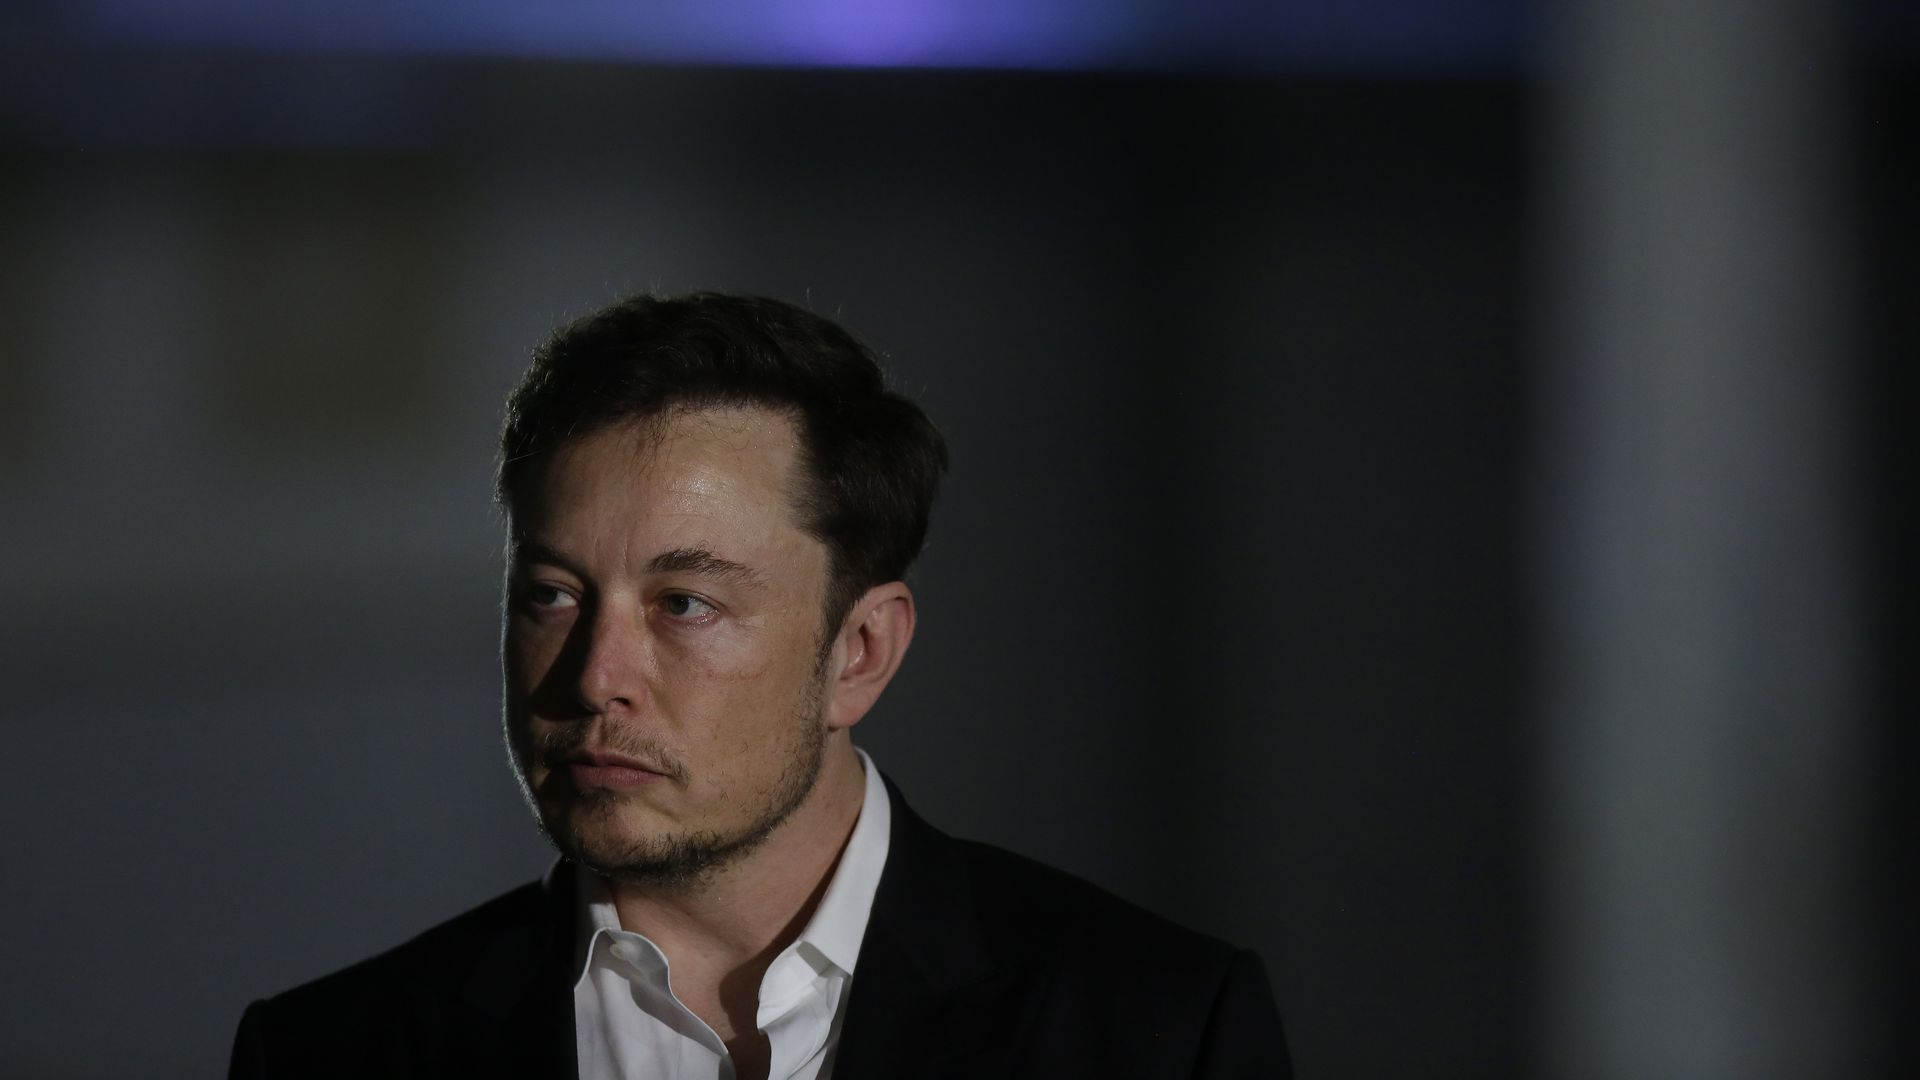 Elon Musk is accused by the SEC of violating his October 2018 fraud settlement with the regulator.